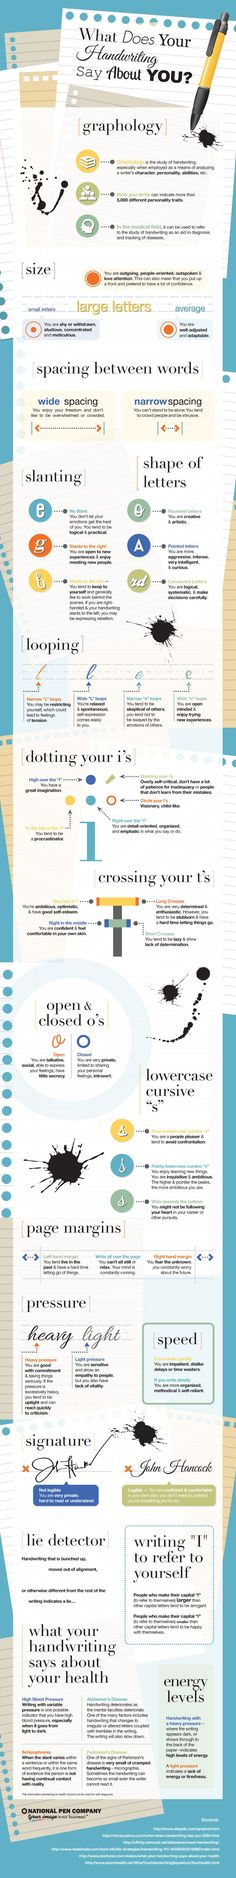 1 | Infographic: What Does Your Handwriting Say About You? | Co.Design: business + innovation + design